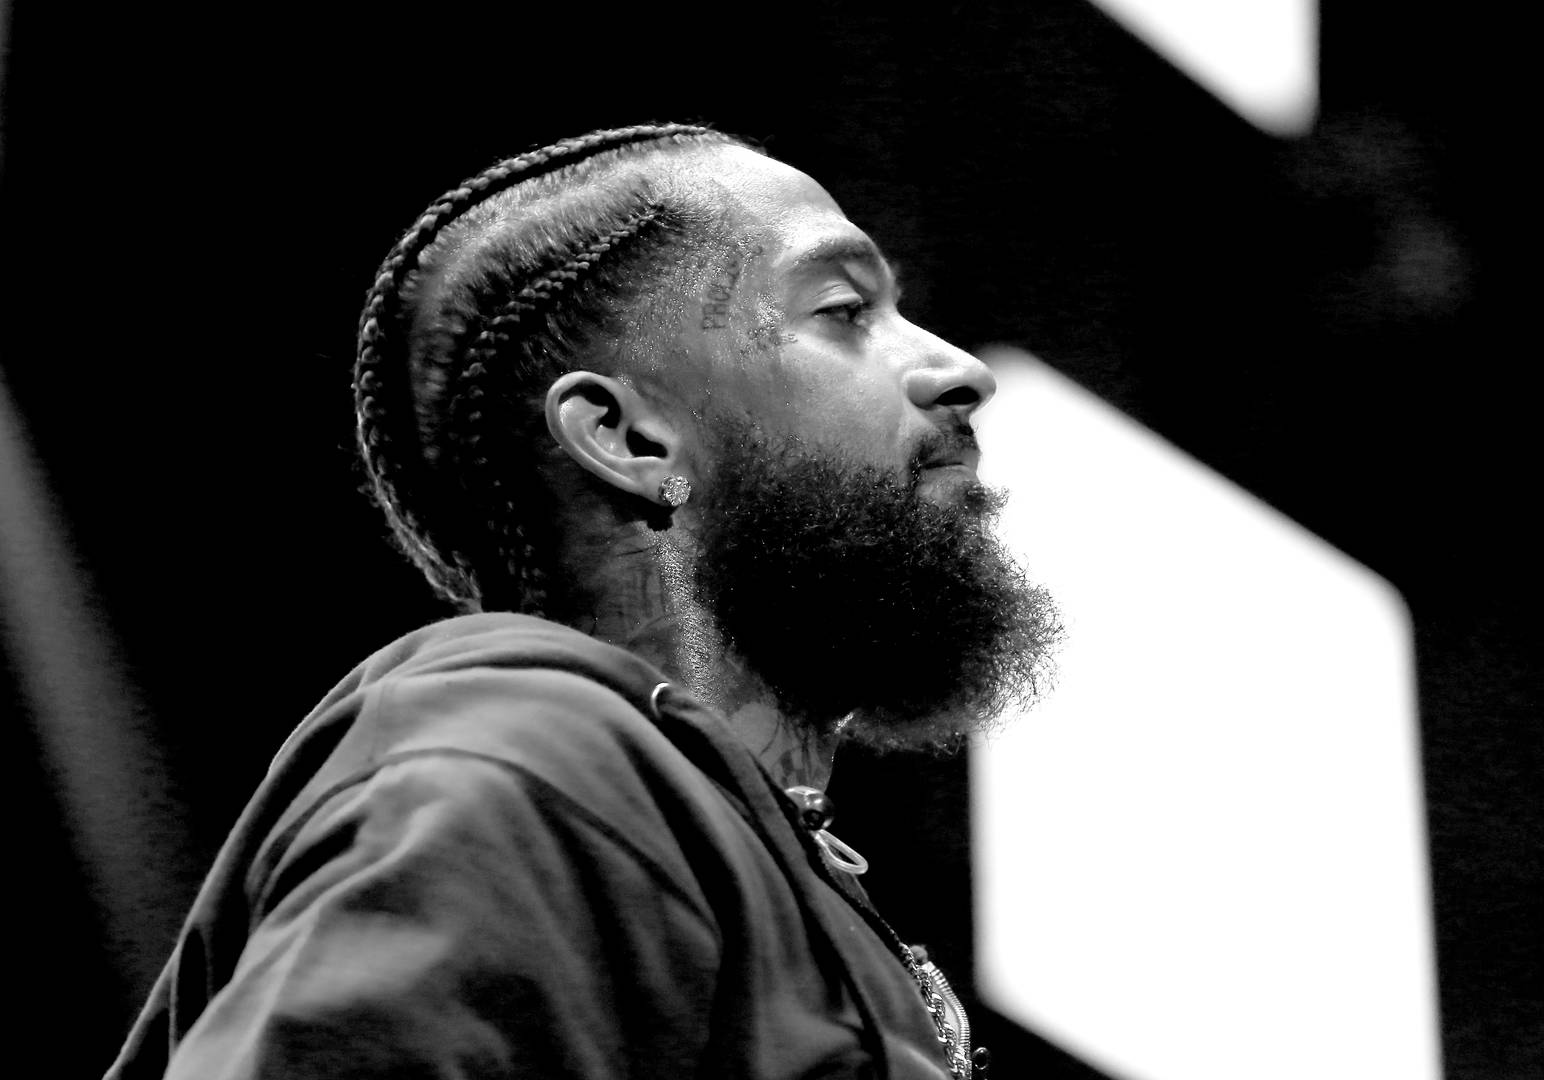 Houston rapper Trae tha Truth organizing vigil for Nipsey Hussle